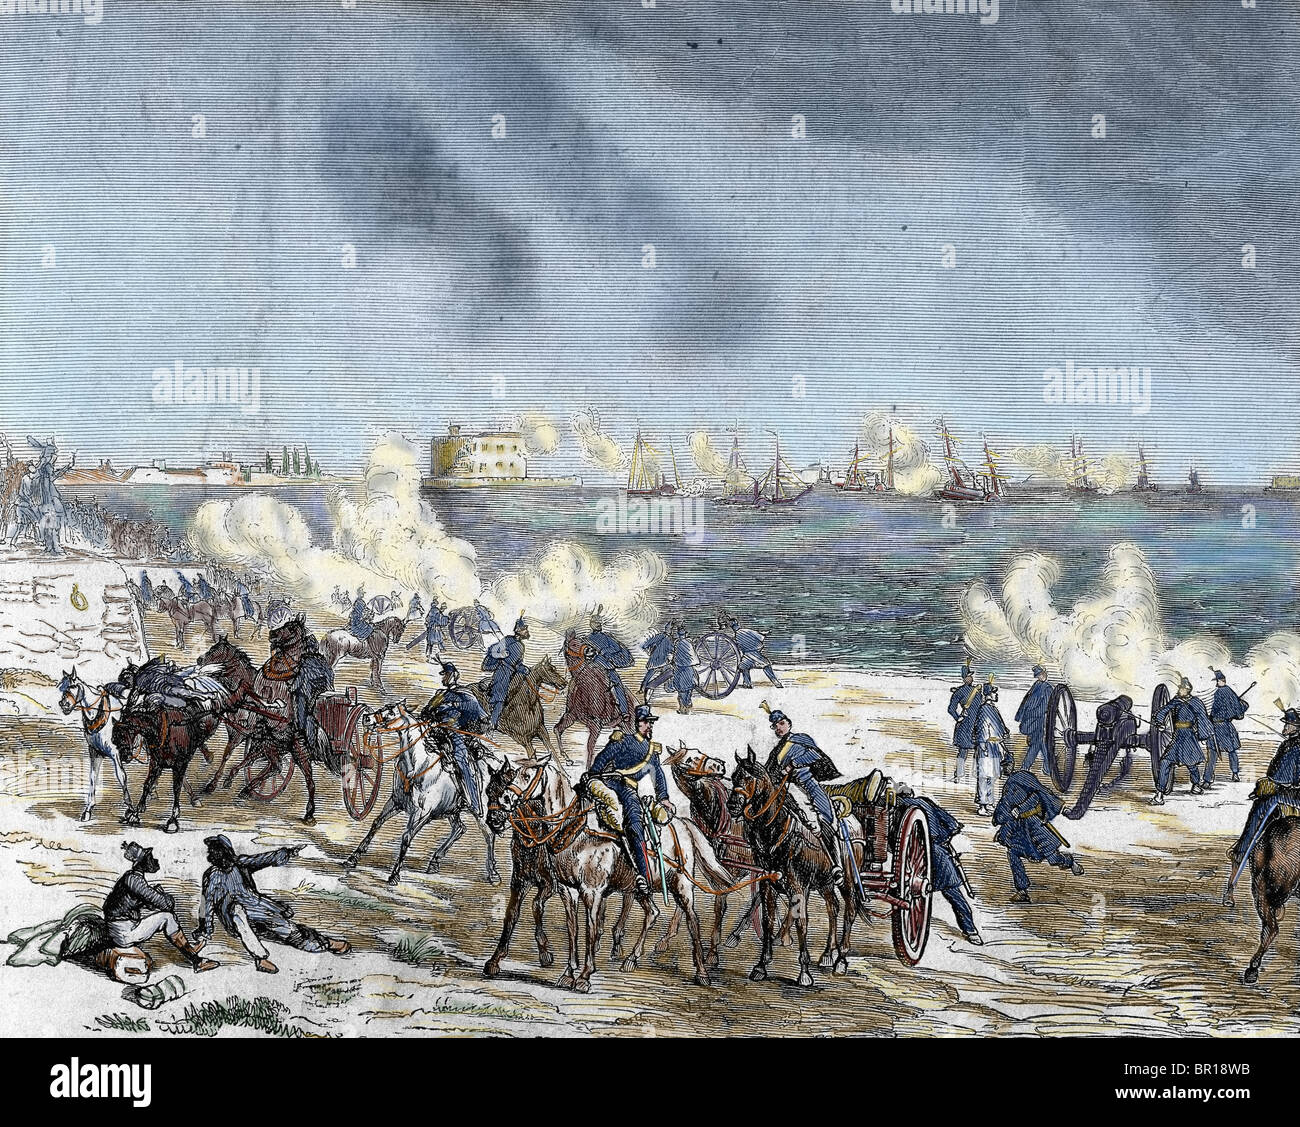 United States. The American Civil War (1861-1865). - Stock Image